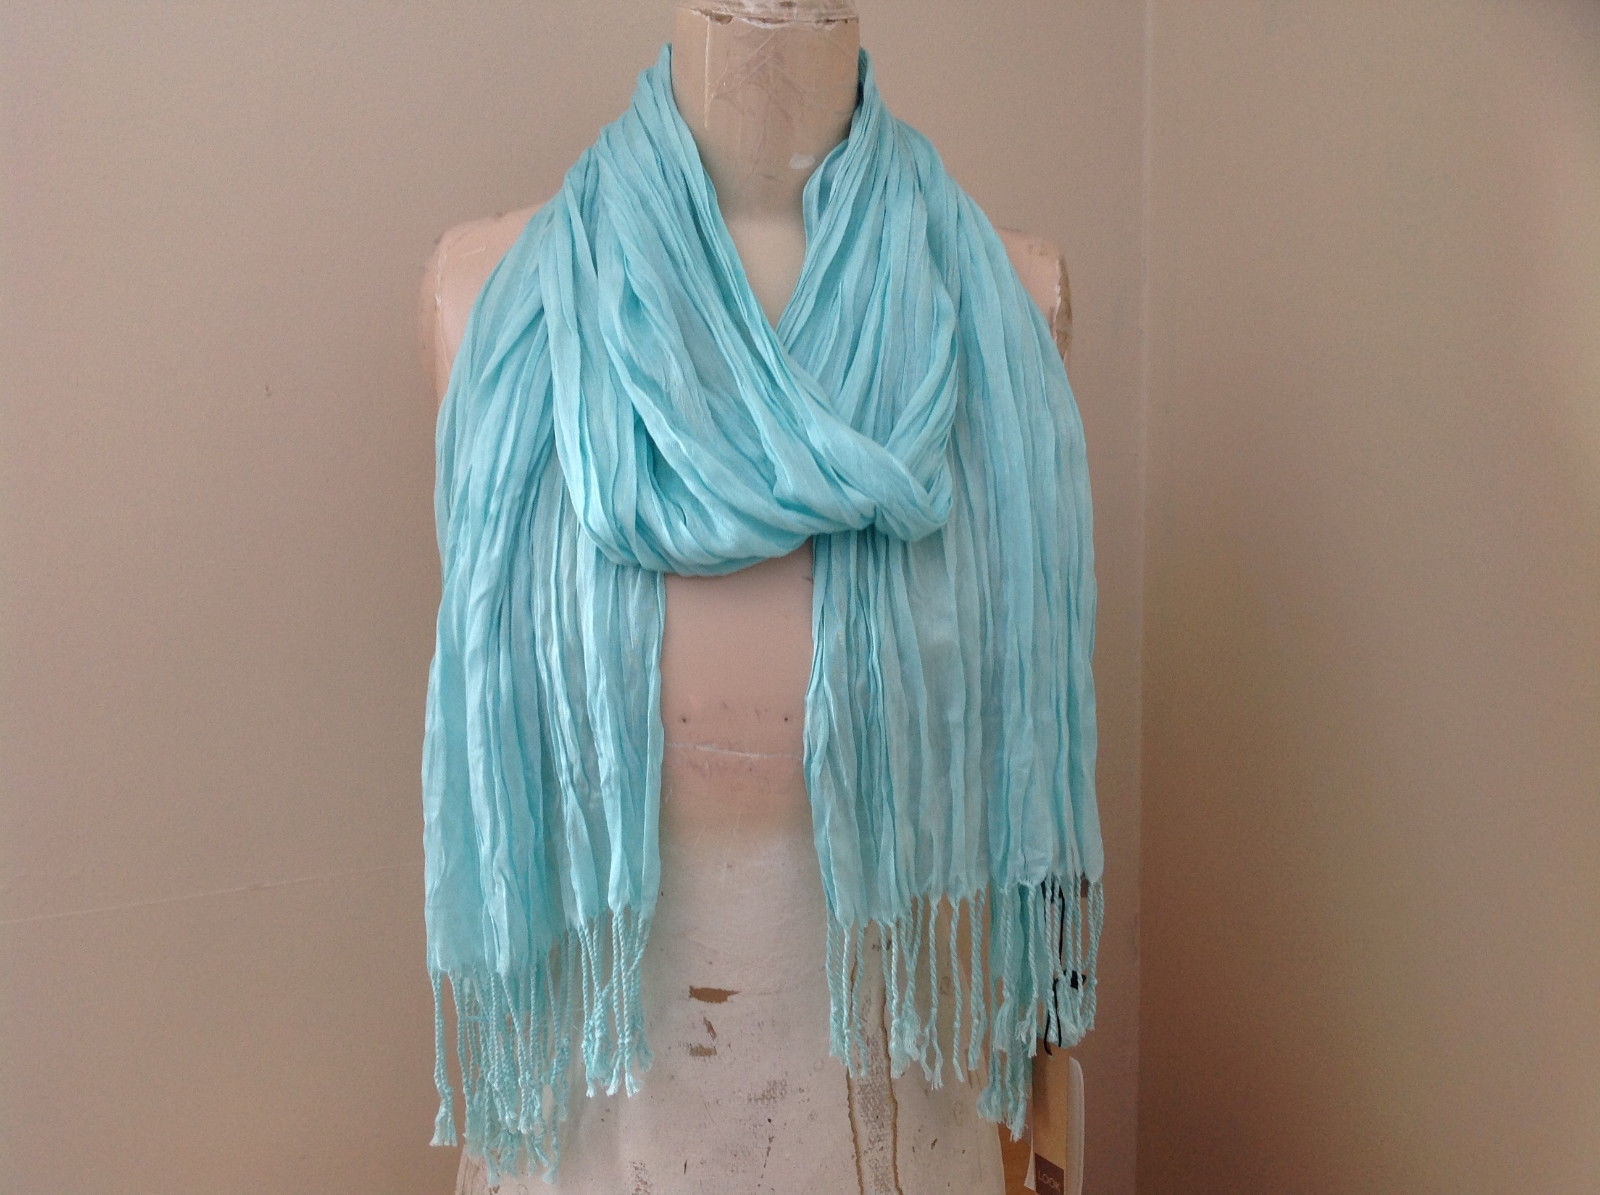 Mint Green Scrunched Style Tasseled Scarf soft silk cotton blend 65 Inches